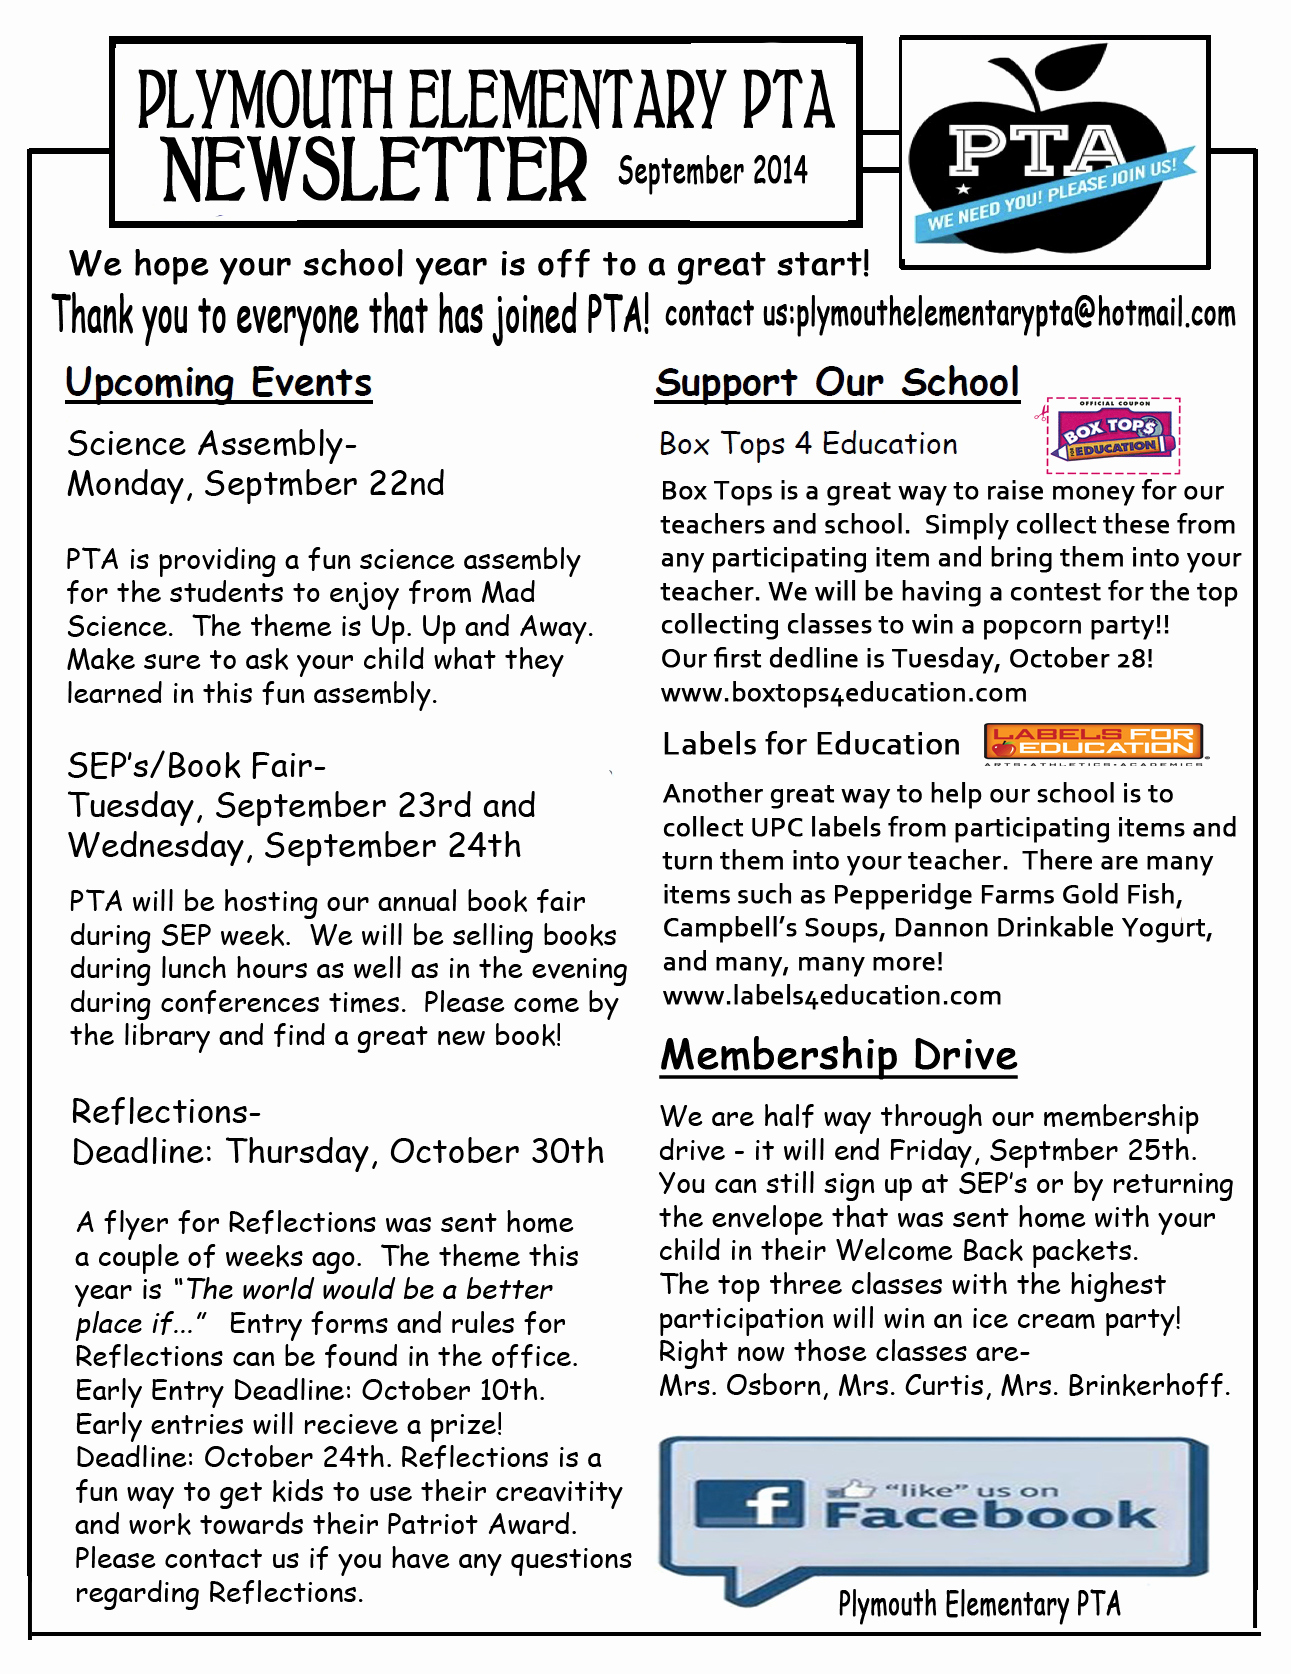 Elementary School Newsletter Template New Pta Newsletter for September